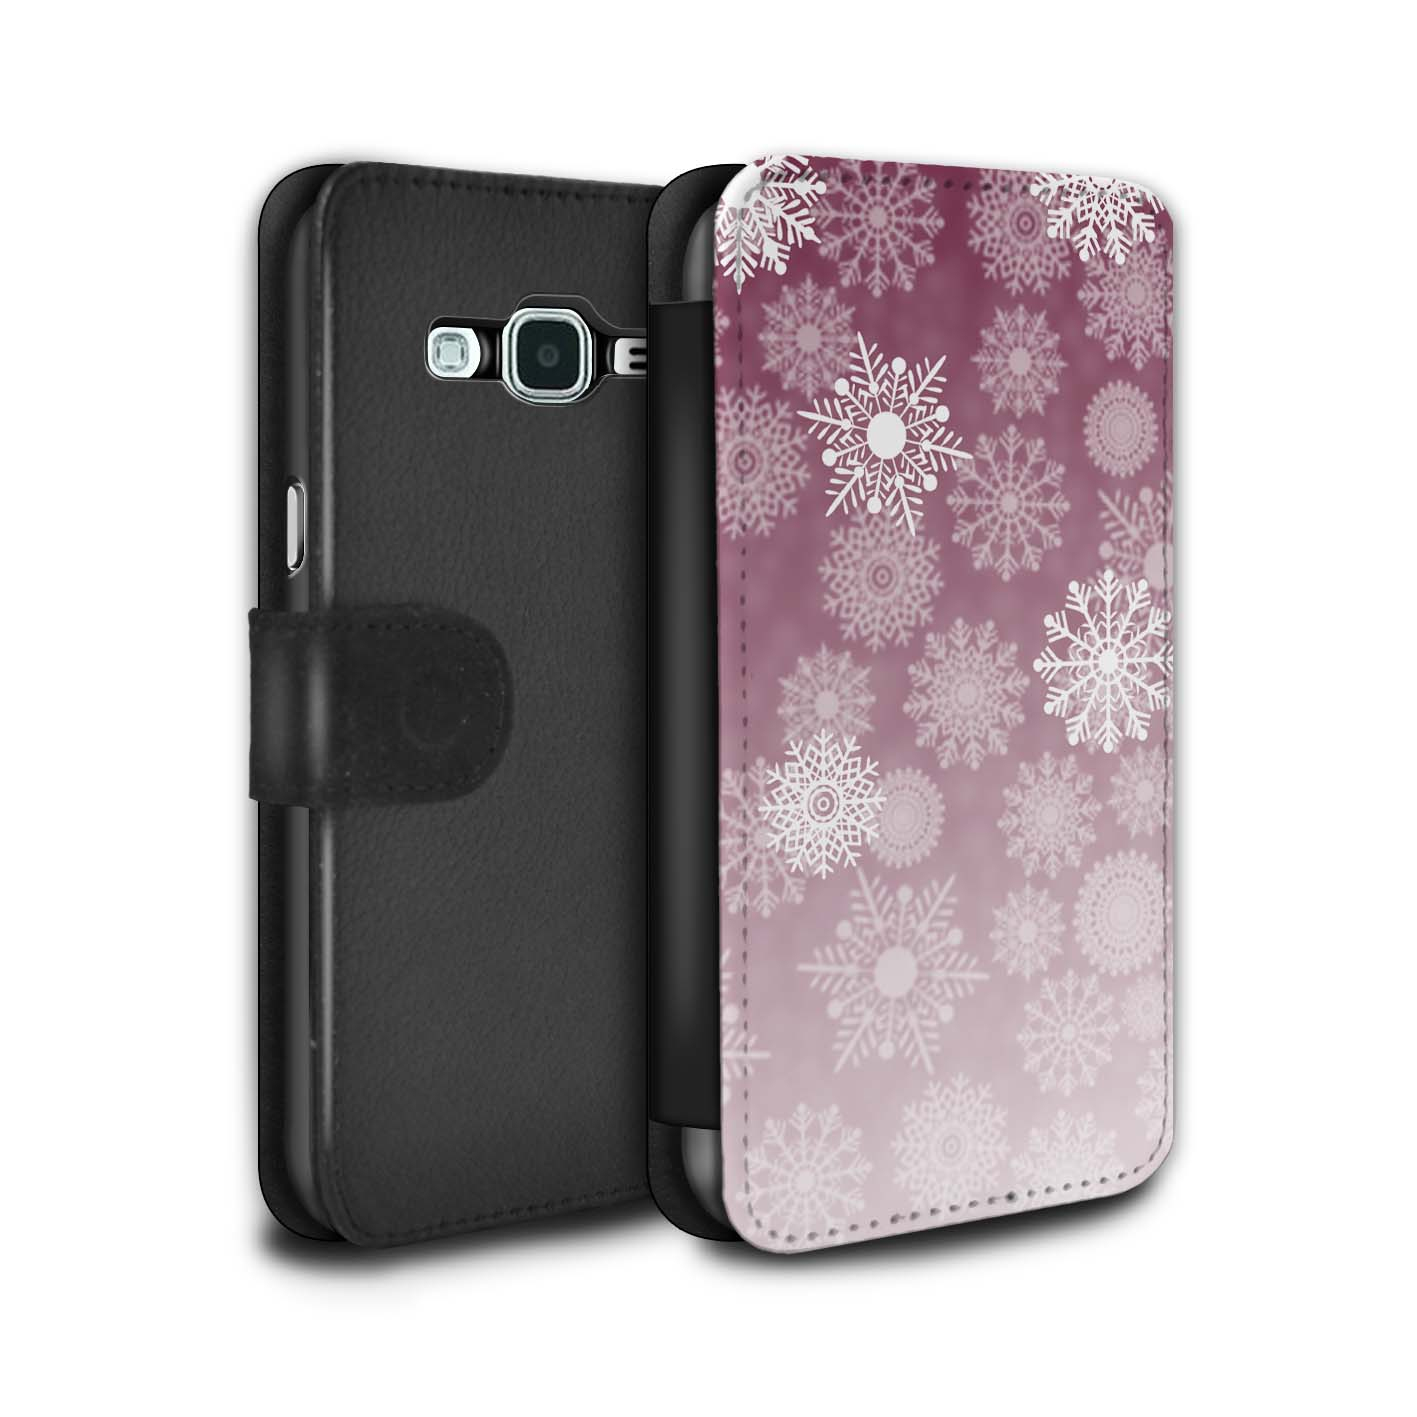 STUFF4-PU-Leather-Case-Cover-Wallet-for-Samsung-Galaxy-J3-Snowflake-Mist